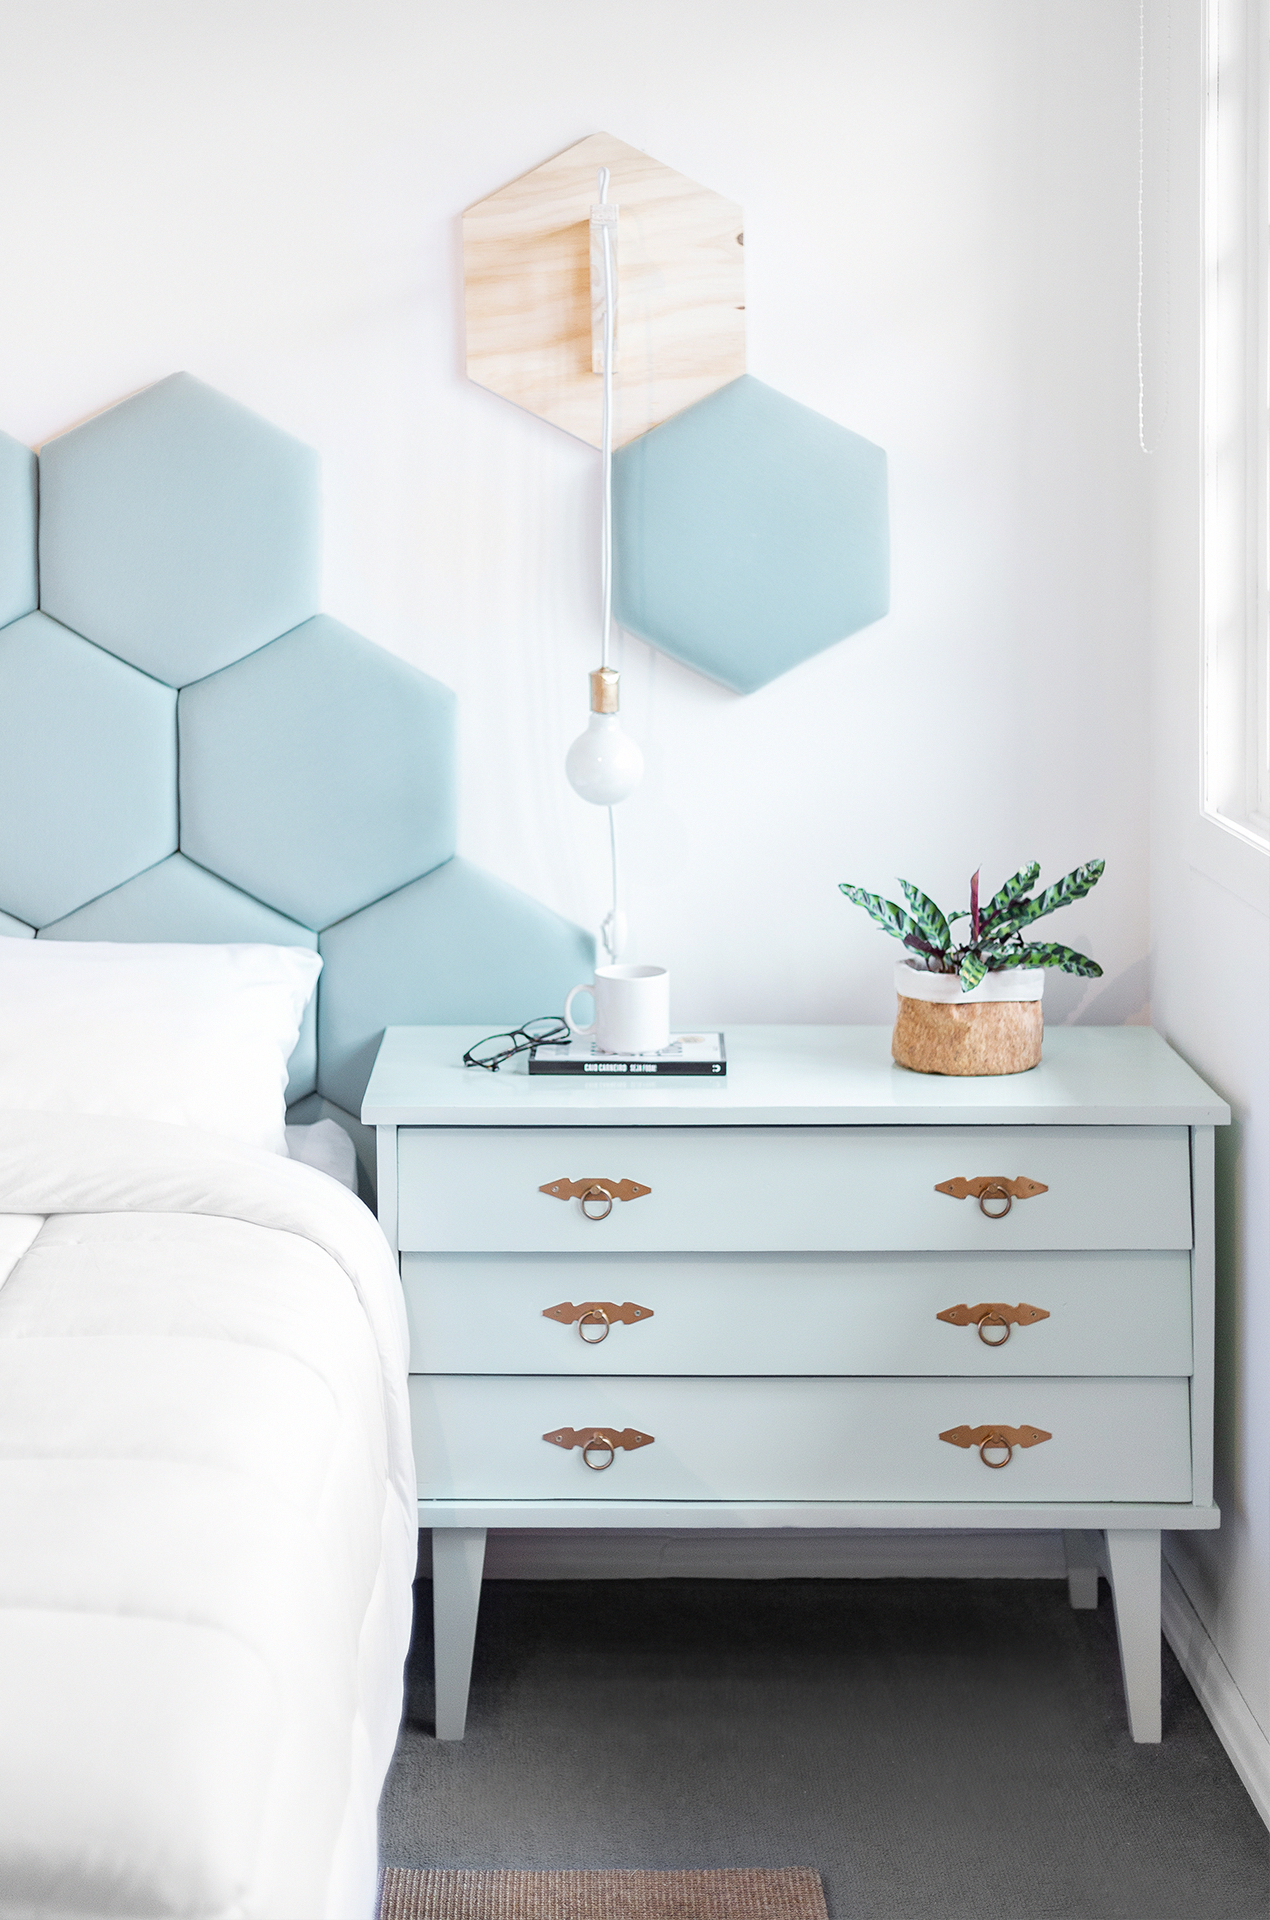 How To Decor A Tiny Room In 2020 With Images Small Bedroom Decor Beautiful Bedroom Decor Bedroom Design